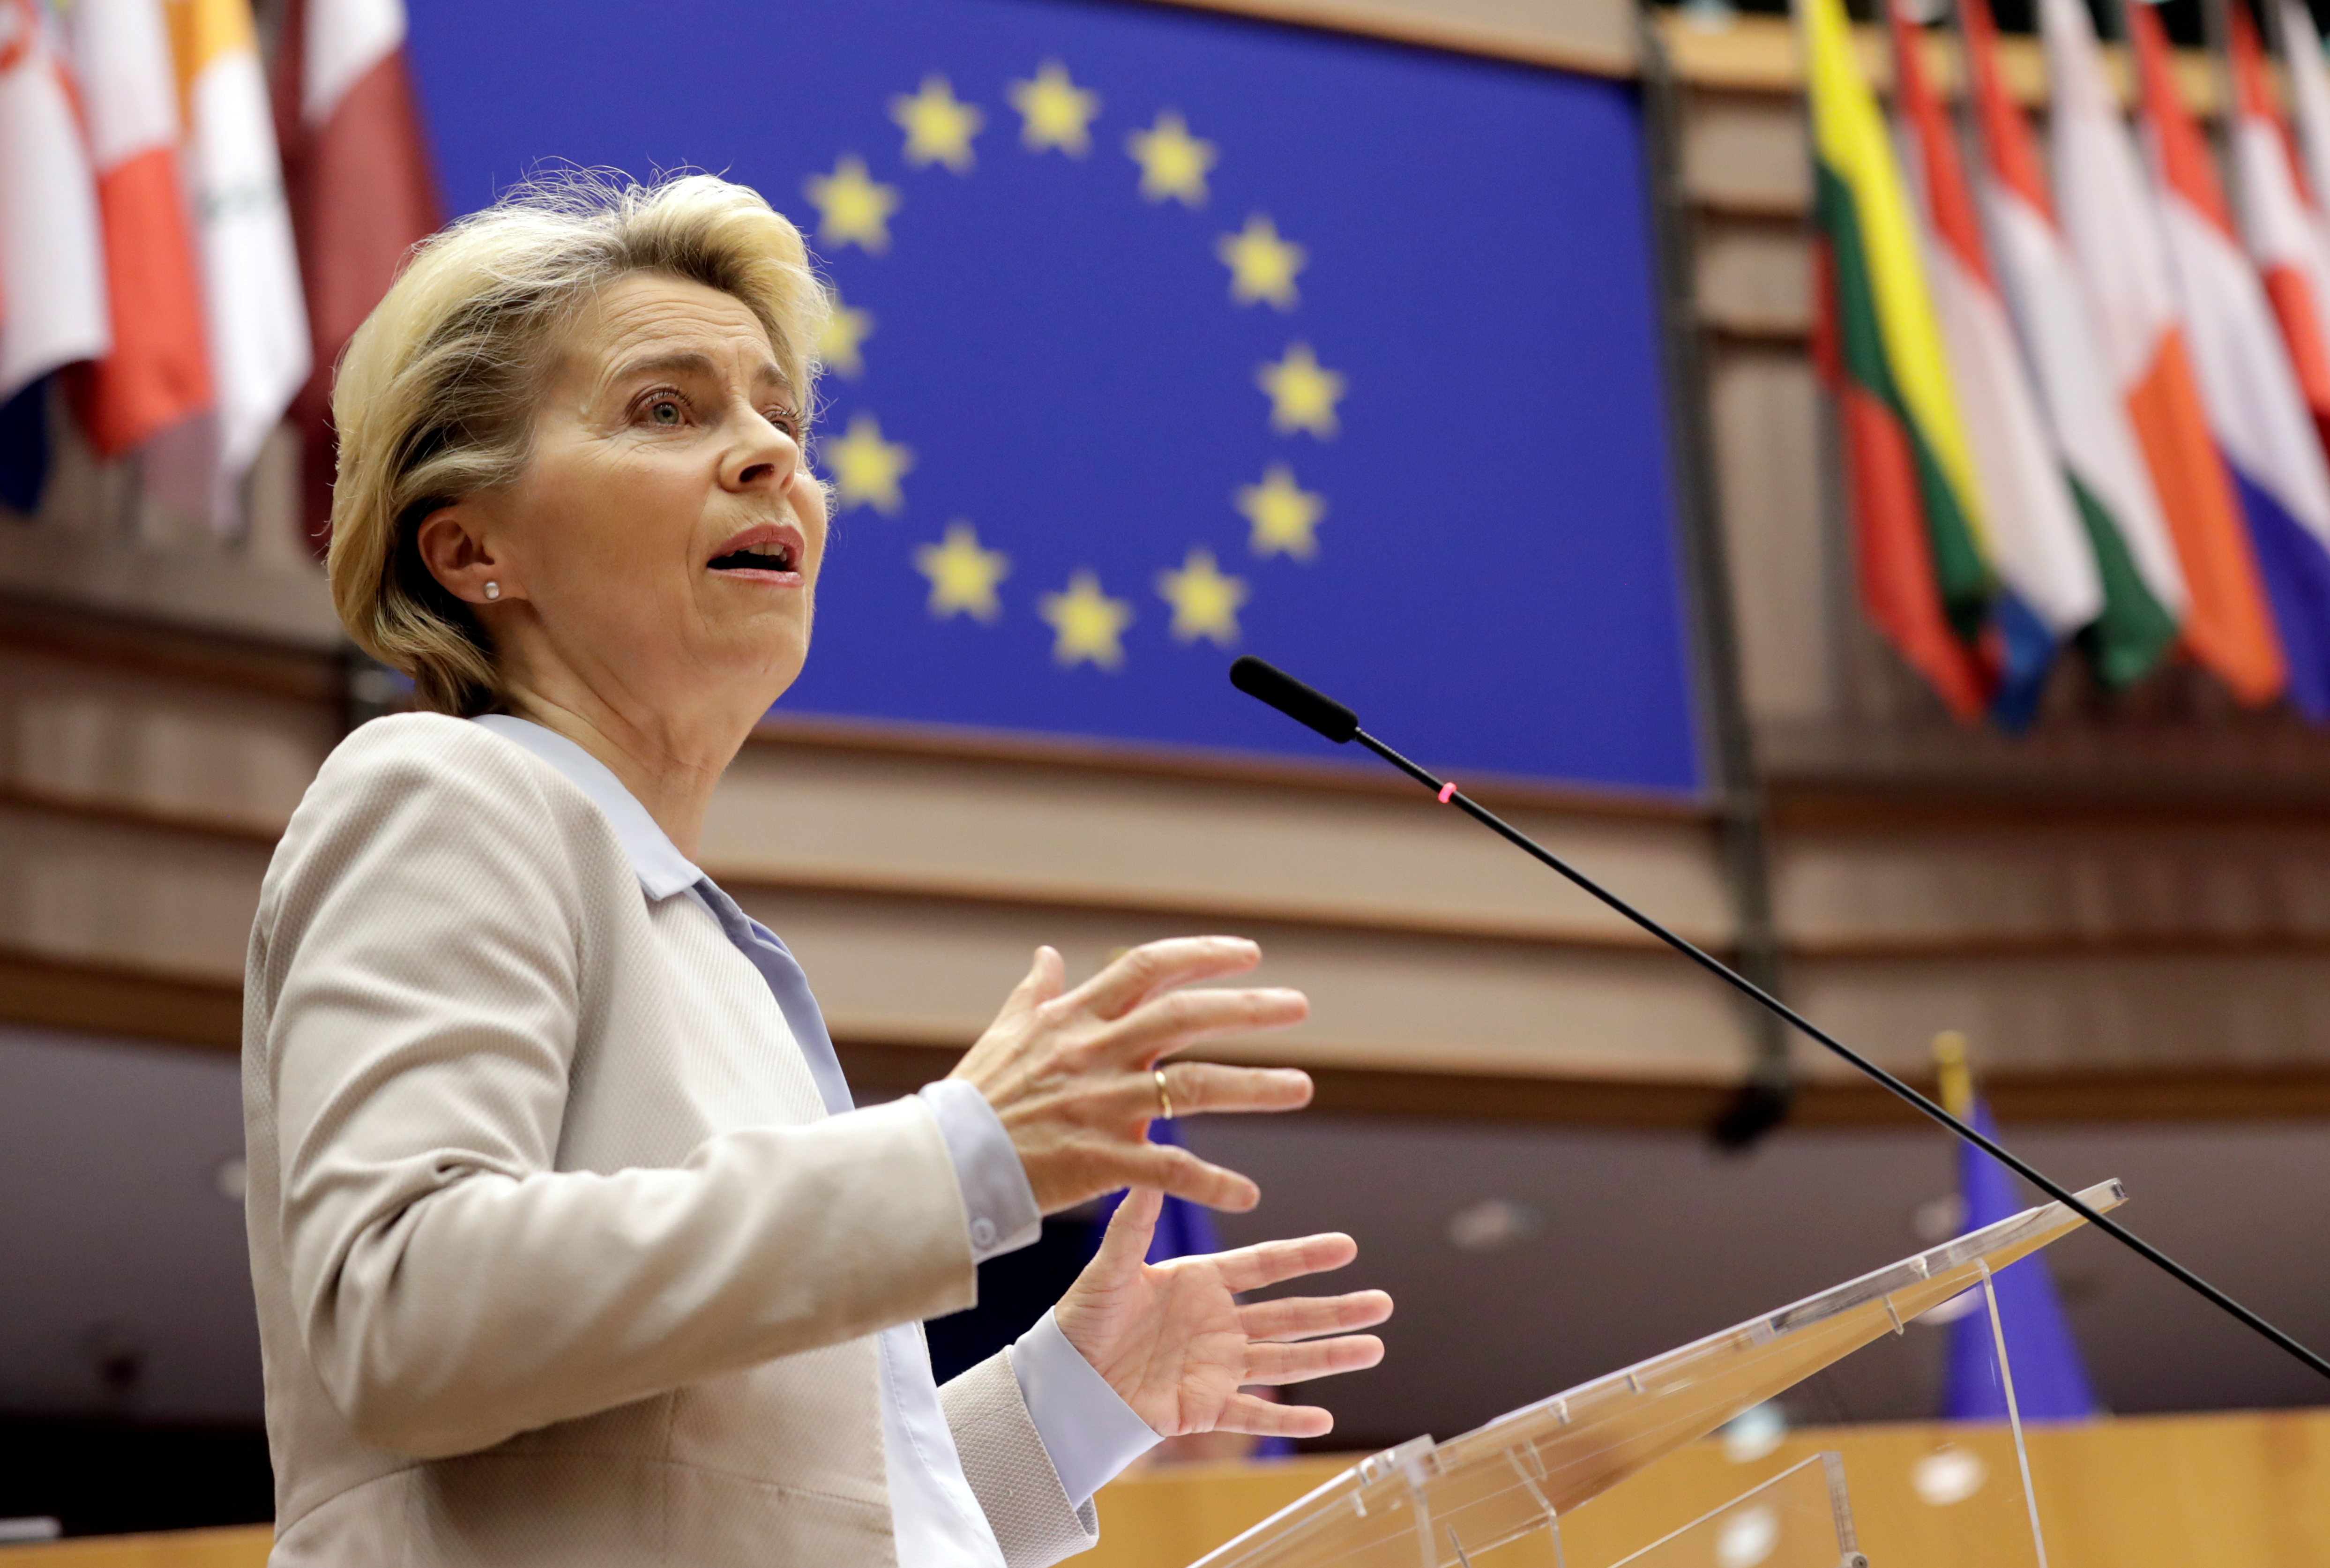 European Commission President Ursula Von Der Leyen speaks during a debate on next EU council and last Brexit development during a plenary session at the European Parliament in Brussels, Belgium November 25, 2020. Olivier Hoslet/Pool via REUTERS/File Photo